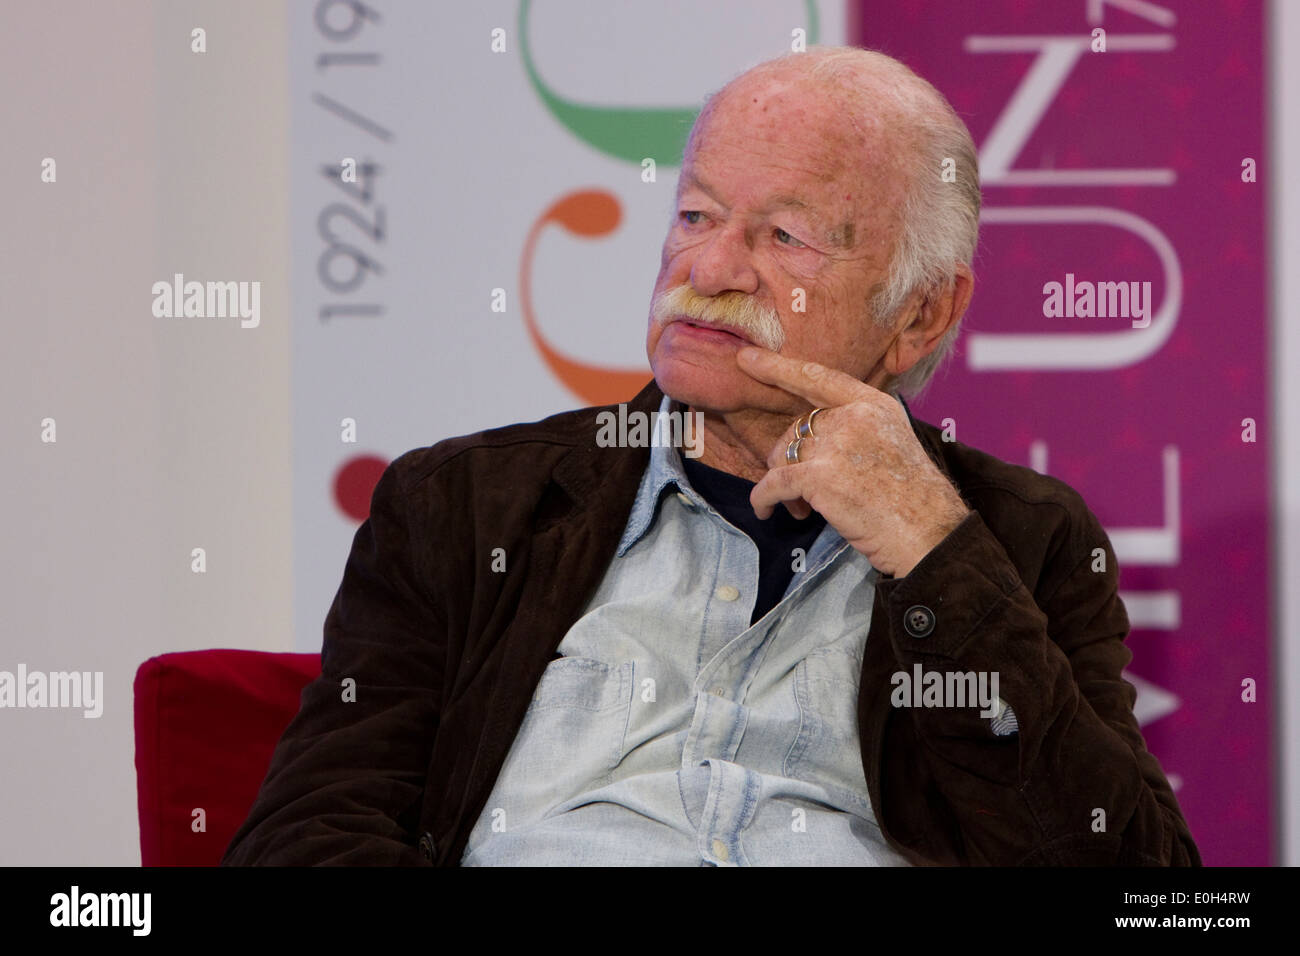 Italian songwriter and singer Gino Paoli is interviewed during Torino Book Fair. Stock Photo